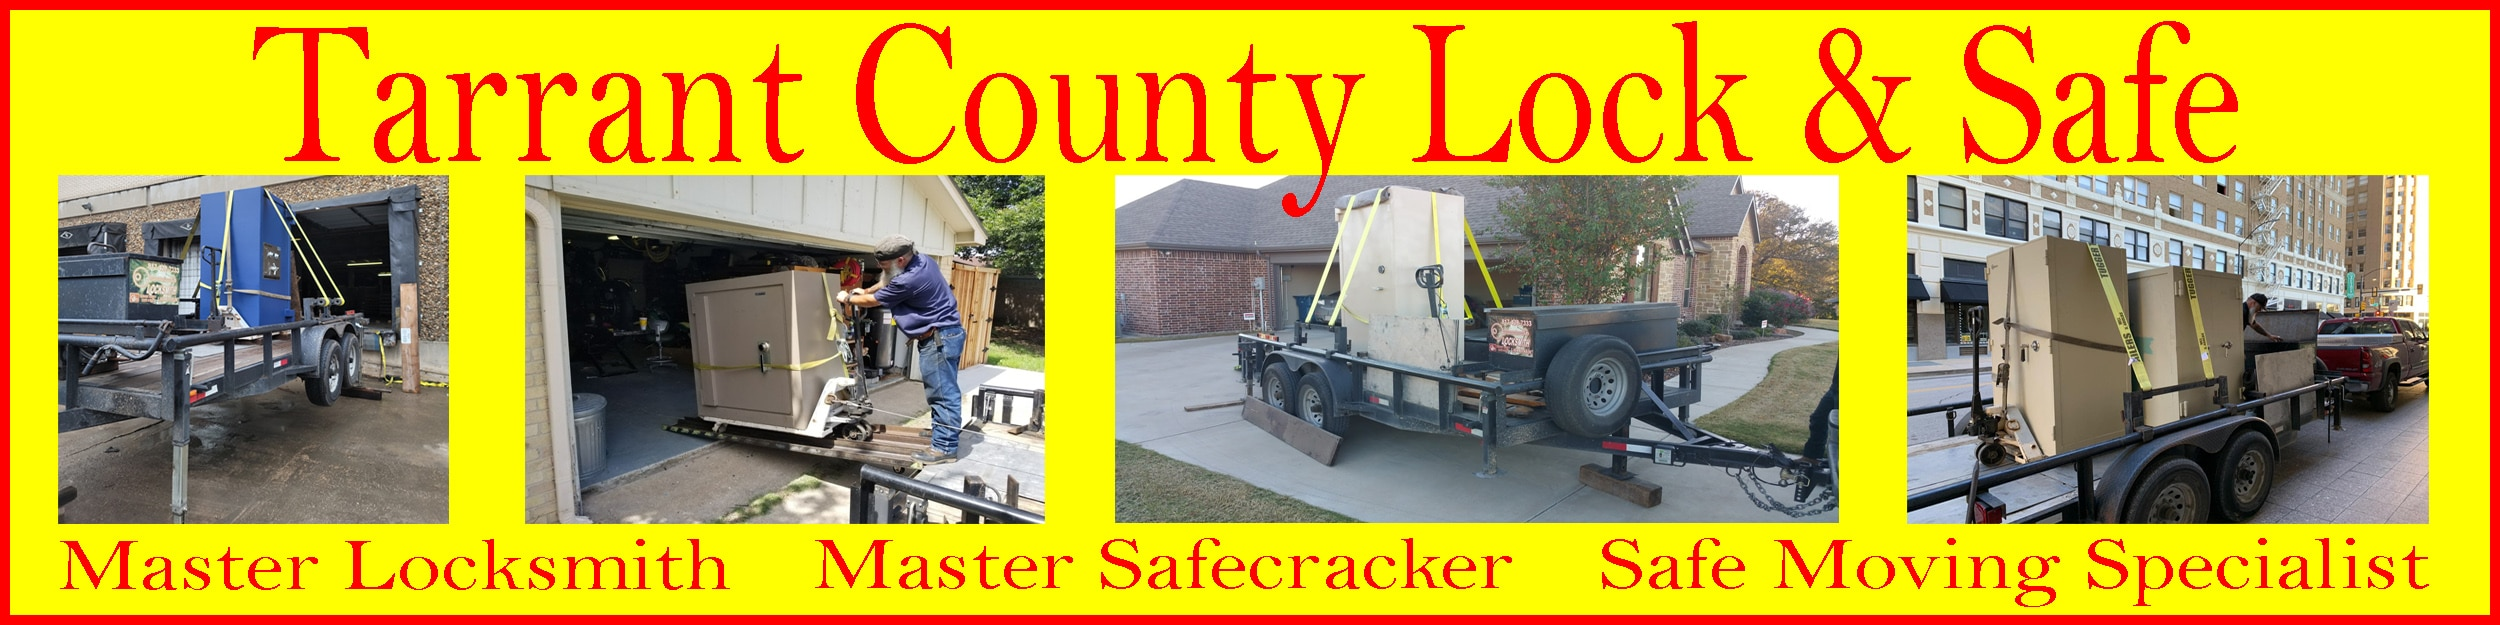 Tarrant County Lock & Safe